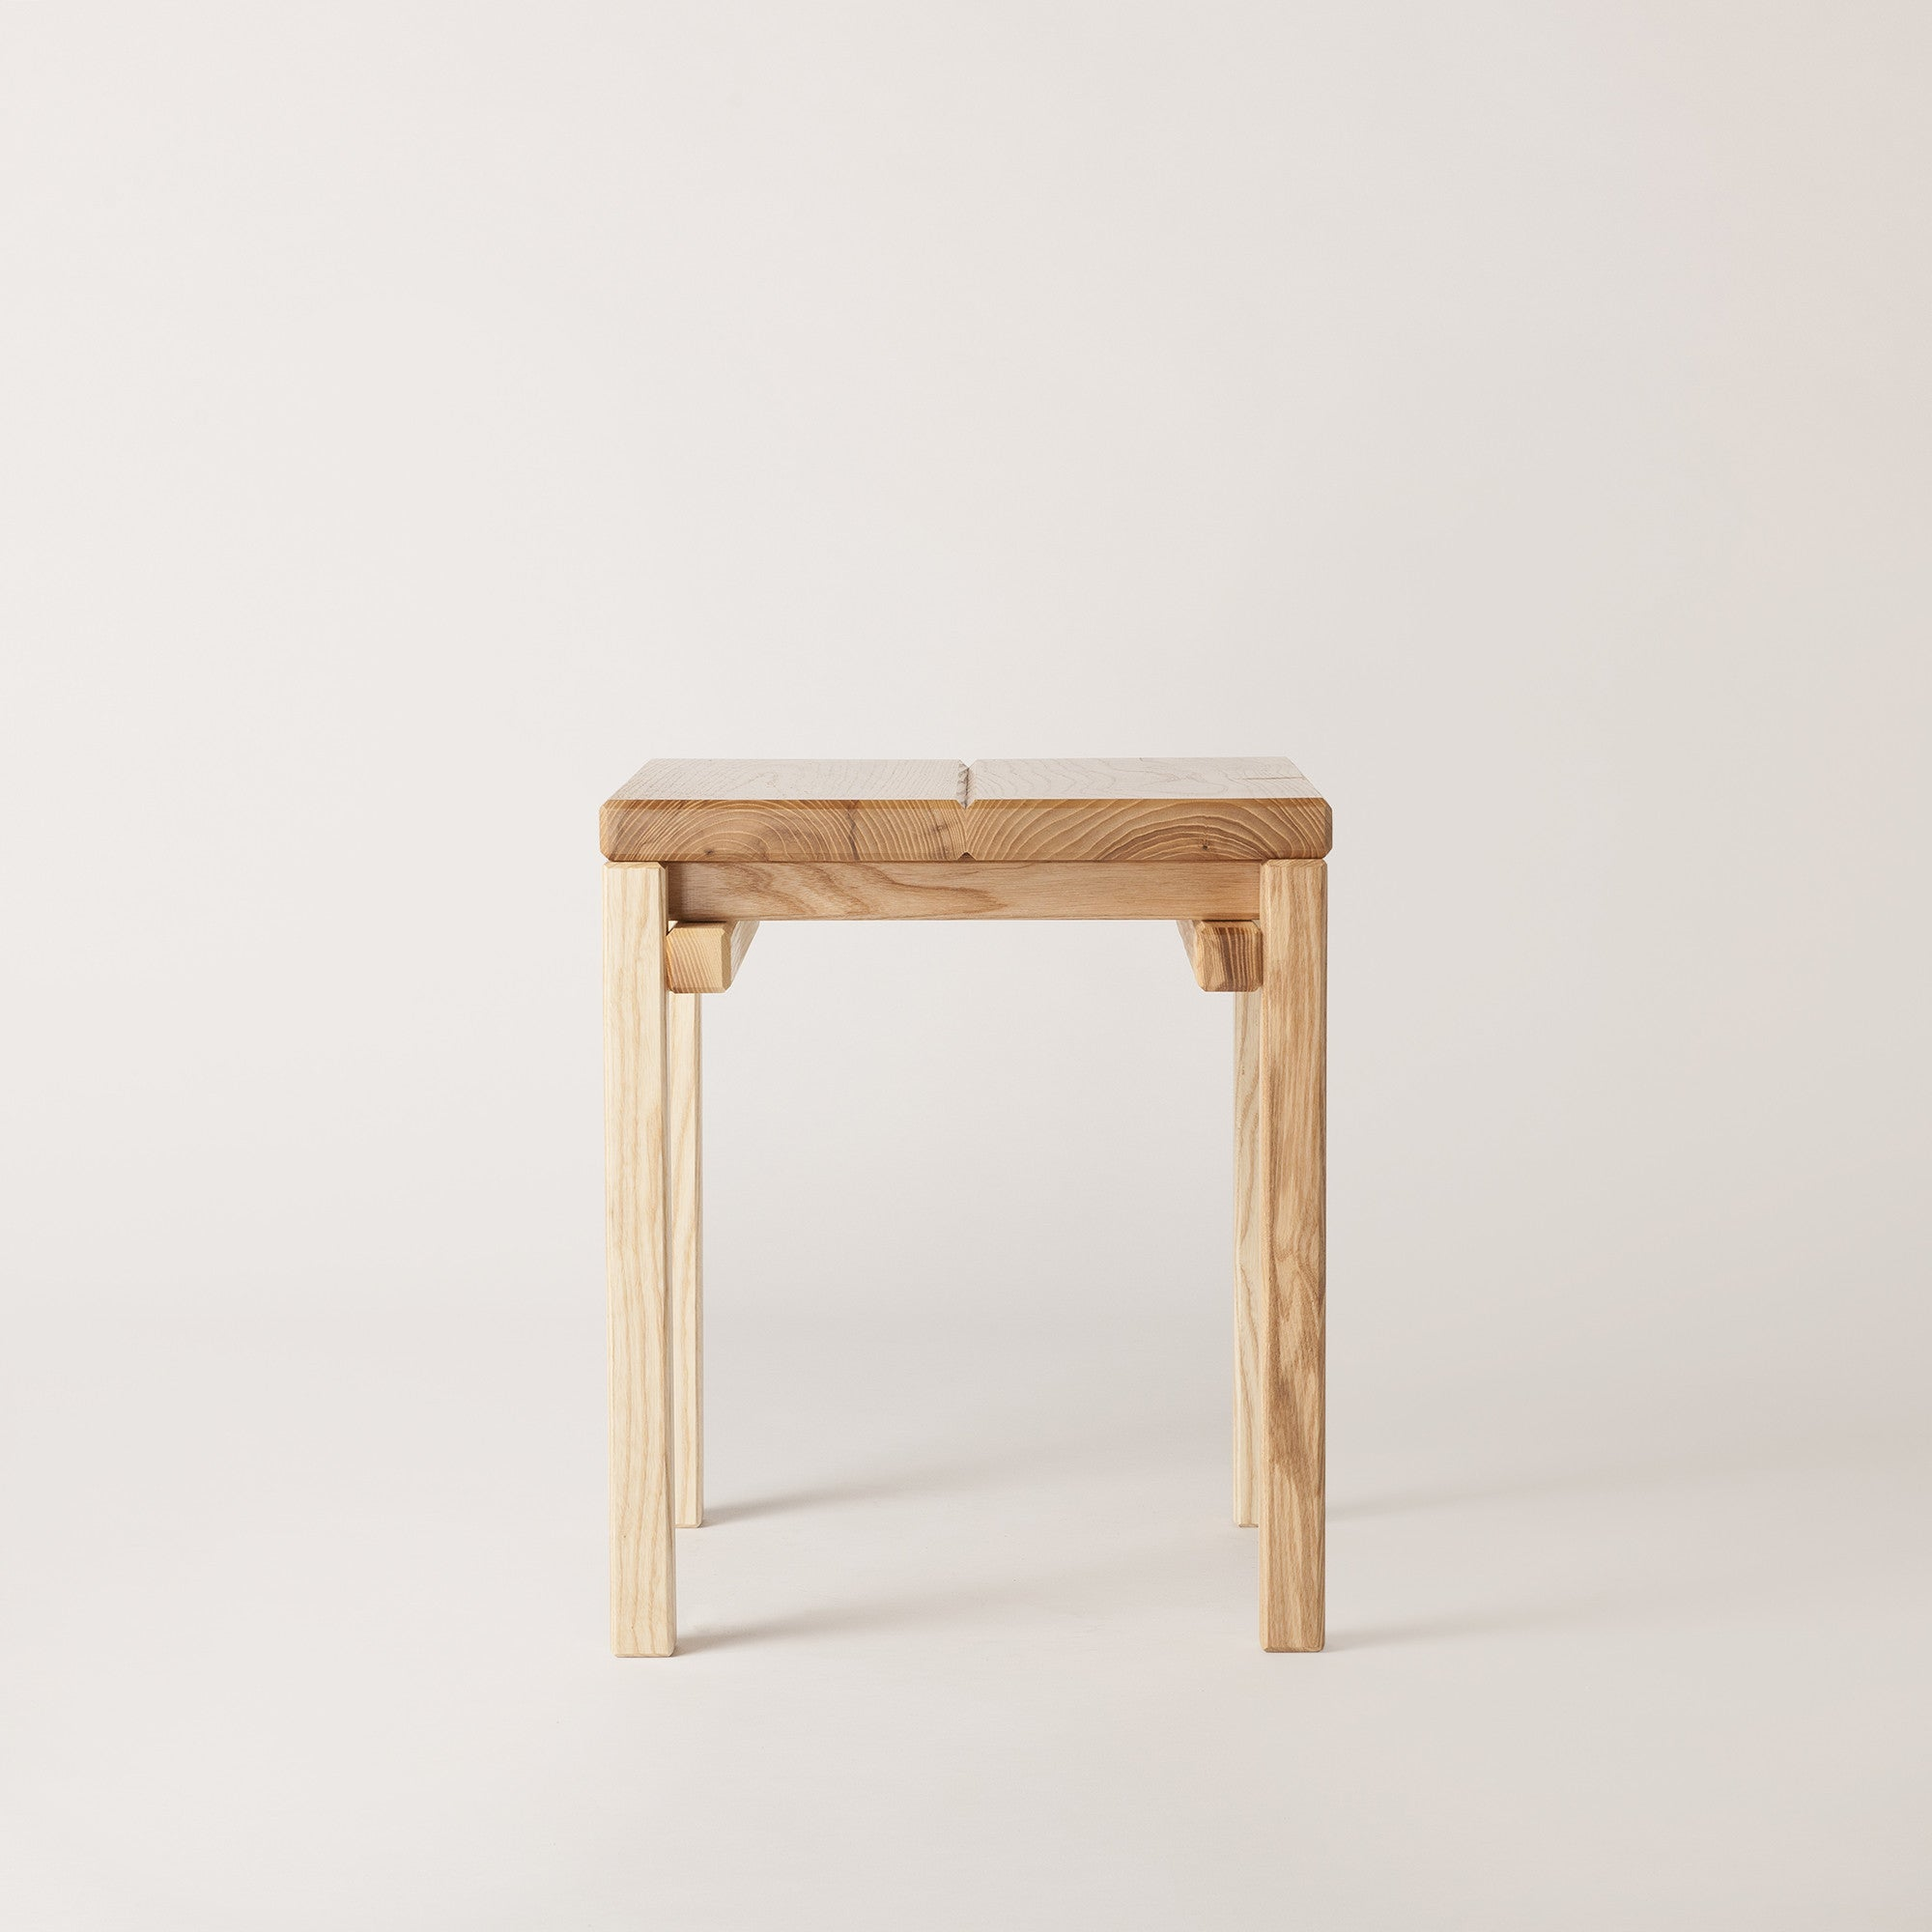 Tim Ber Low Stool by Dowel Jones